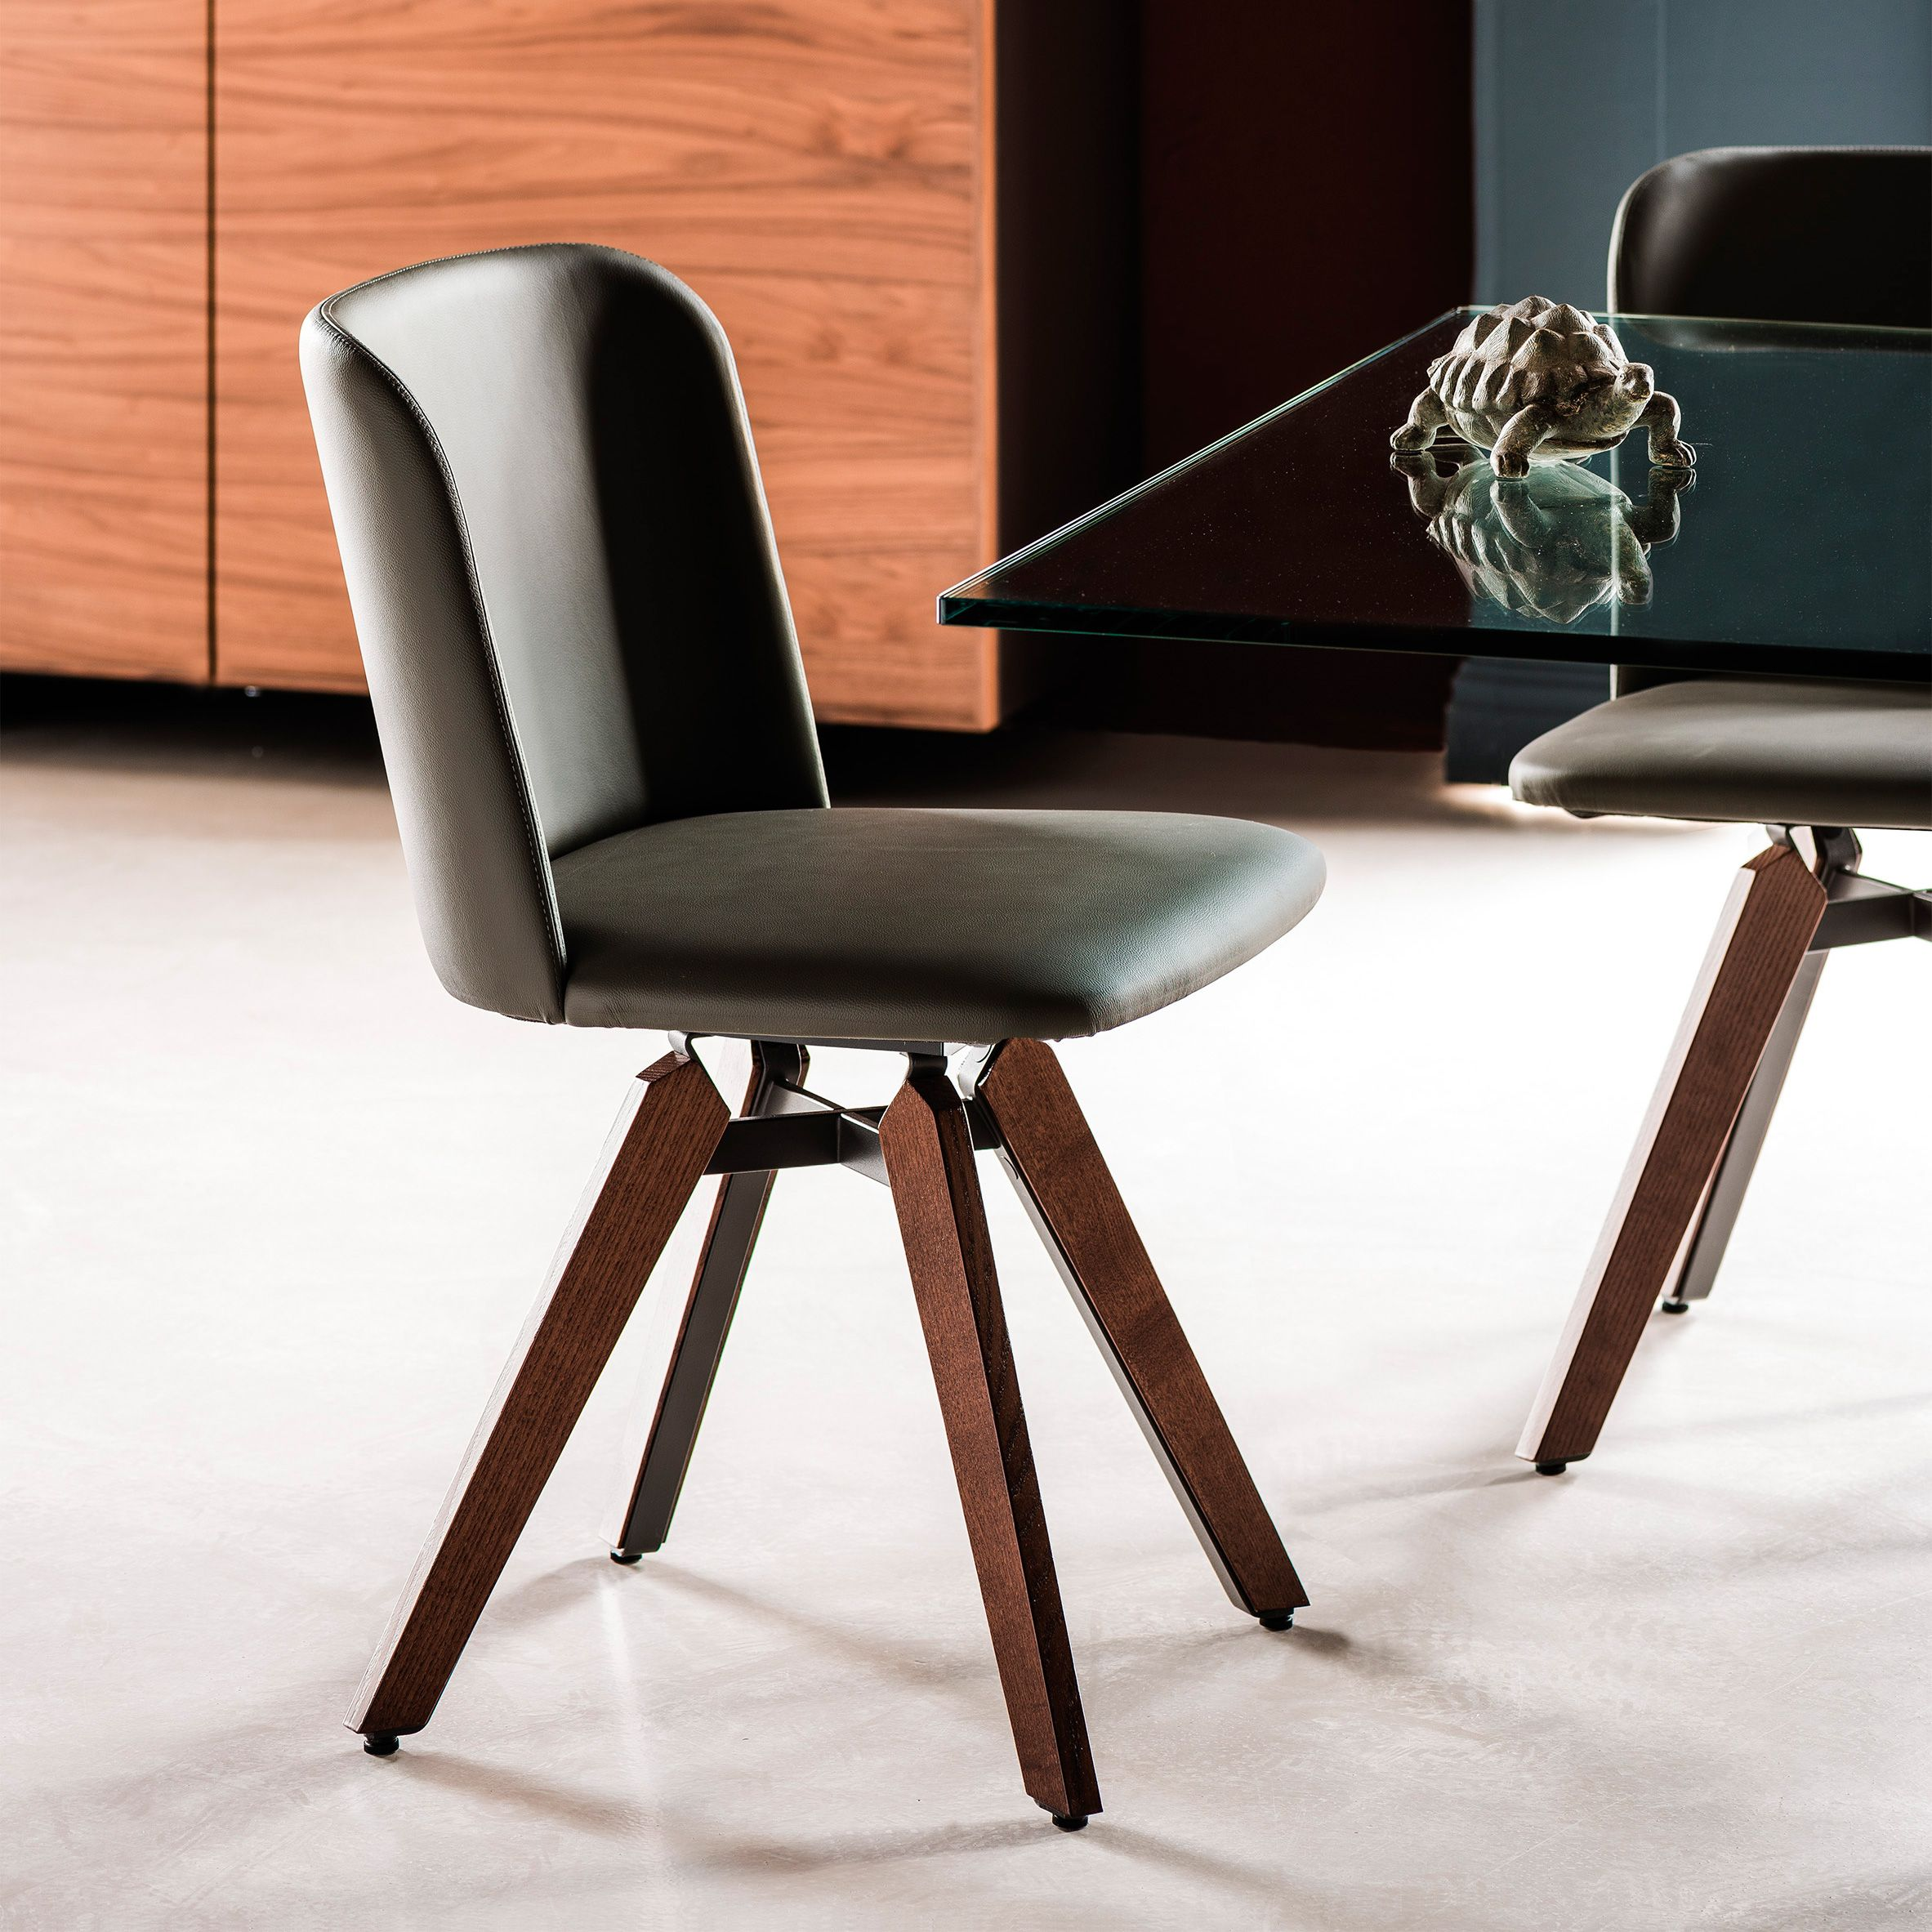 SEATING CHAIRS SOFIA Cattelan Italia HARRODS SHOWROOM 89 x 48 5 x 61 5 Dining Chairs Pinterest